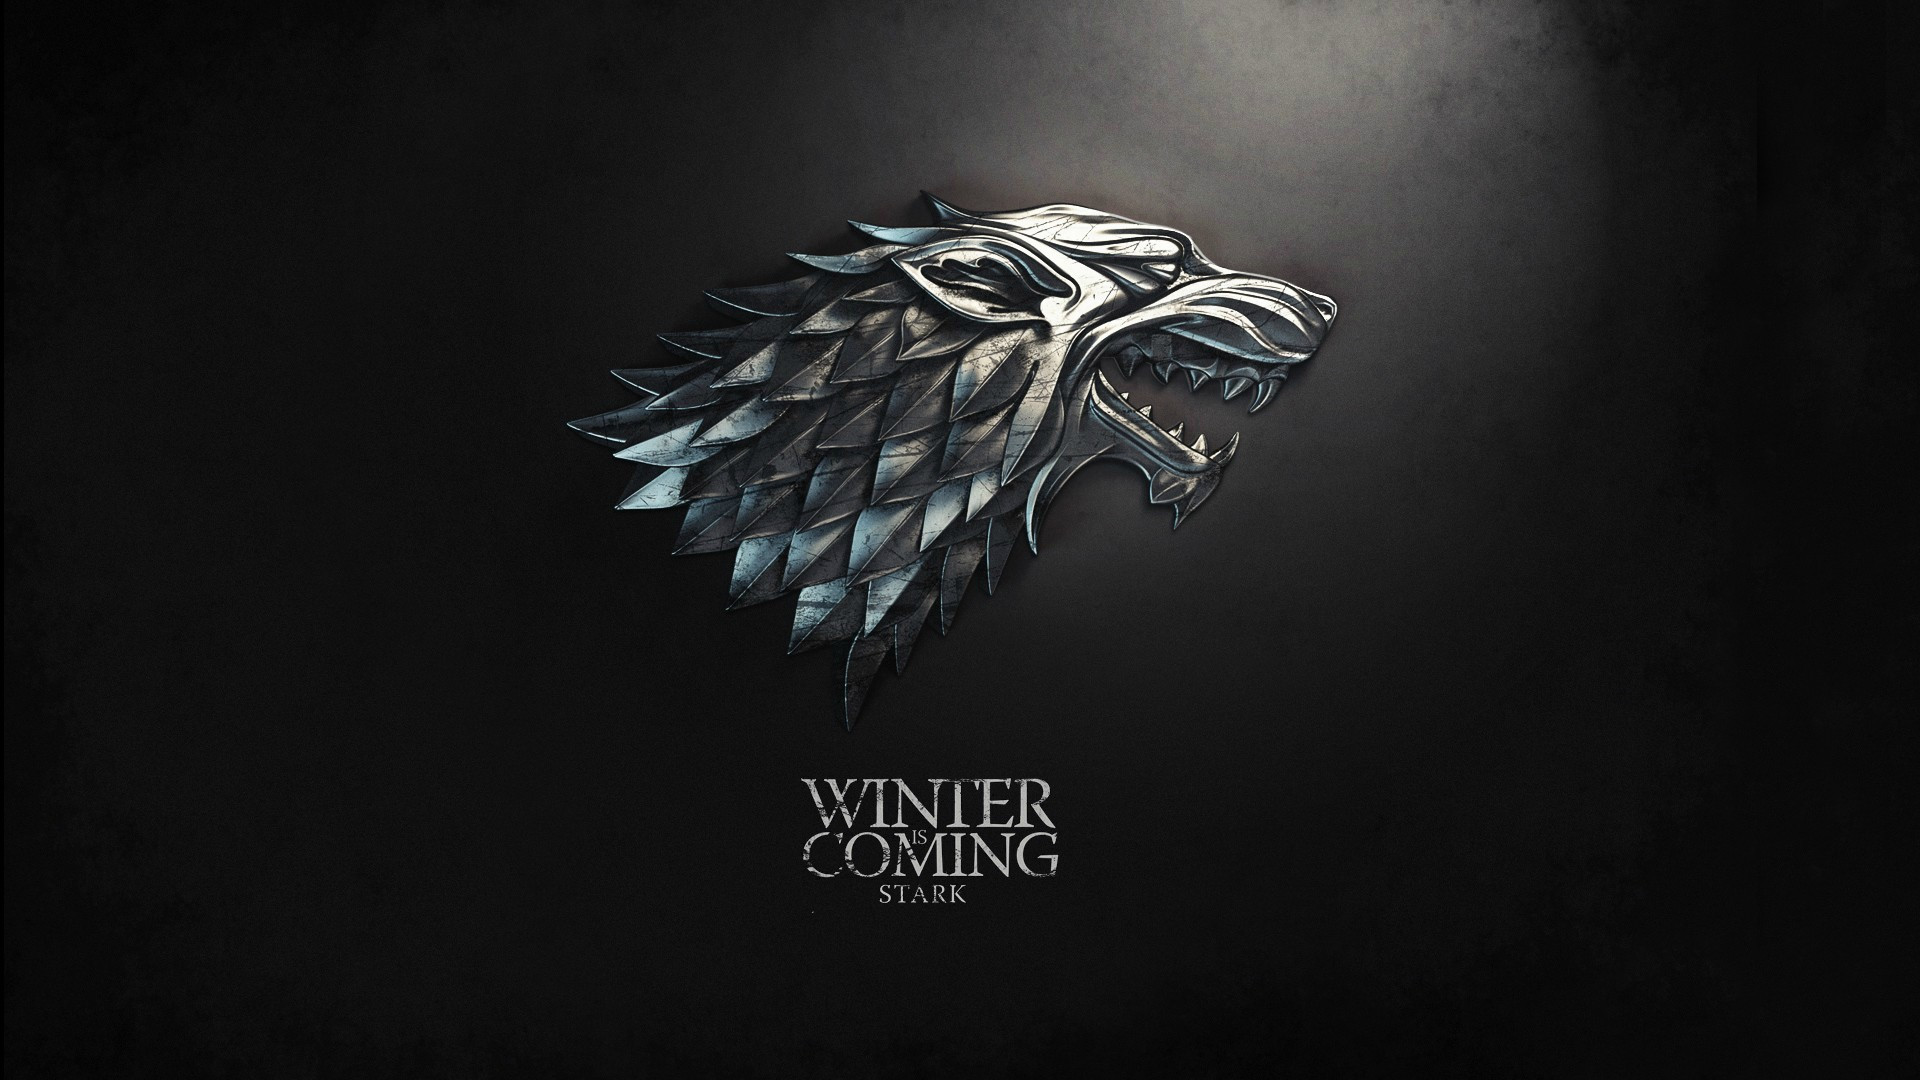 Game-of-Thrones-%C2%A1-HD-Megapost-1920x1080-Taringa-wallpaper-wp340237